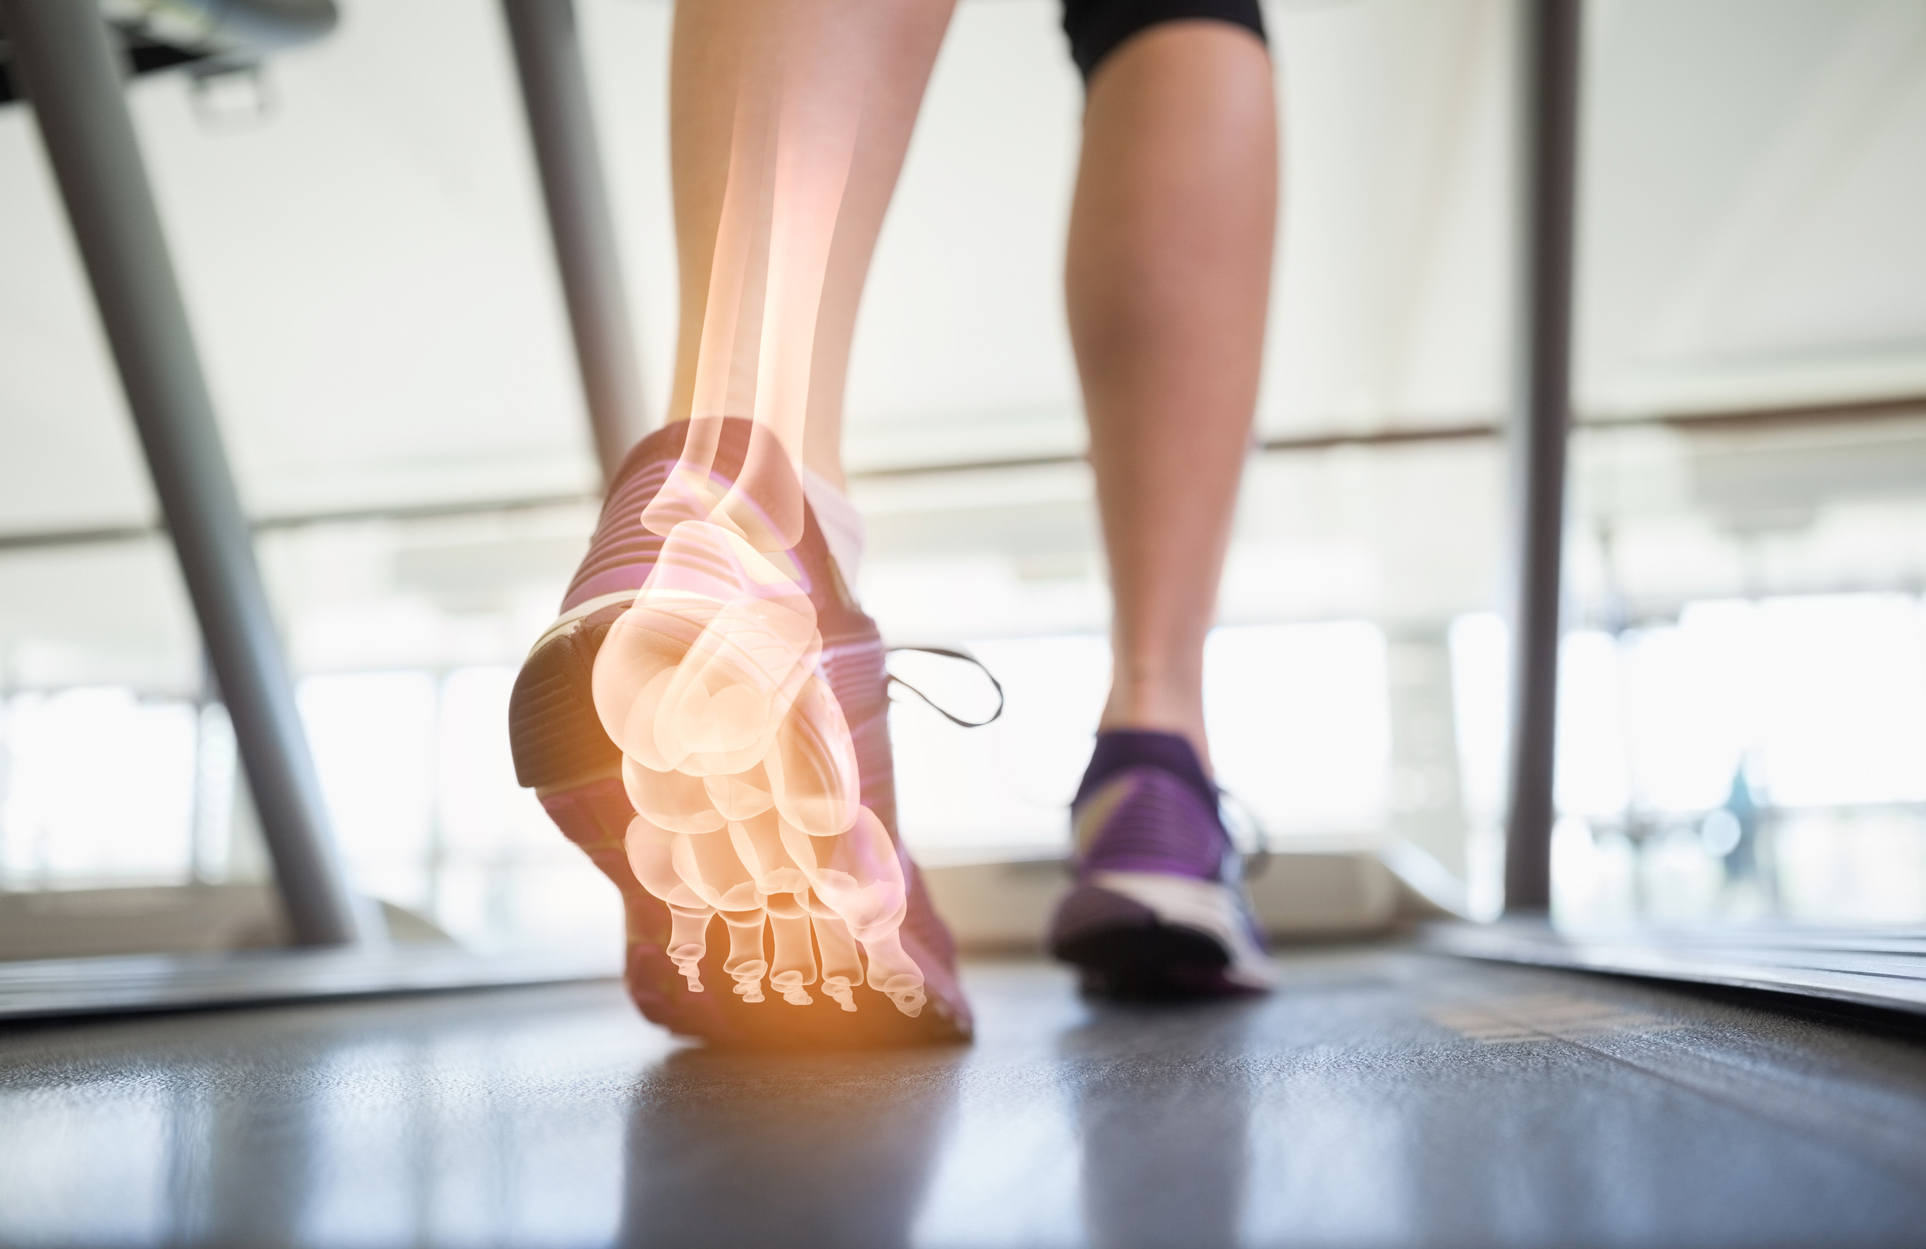 Jogging feet with x-ray view of foot bones